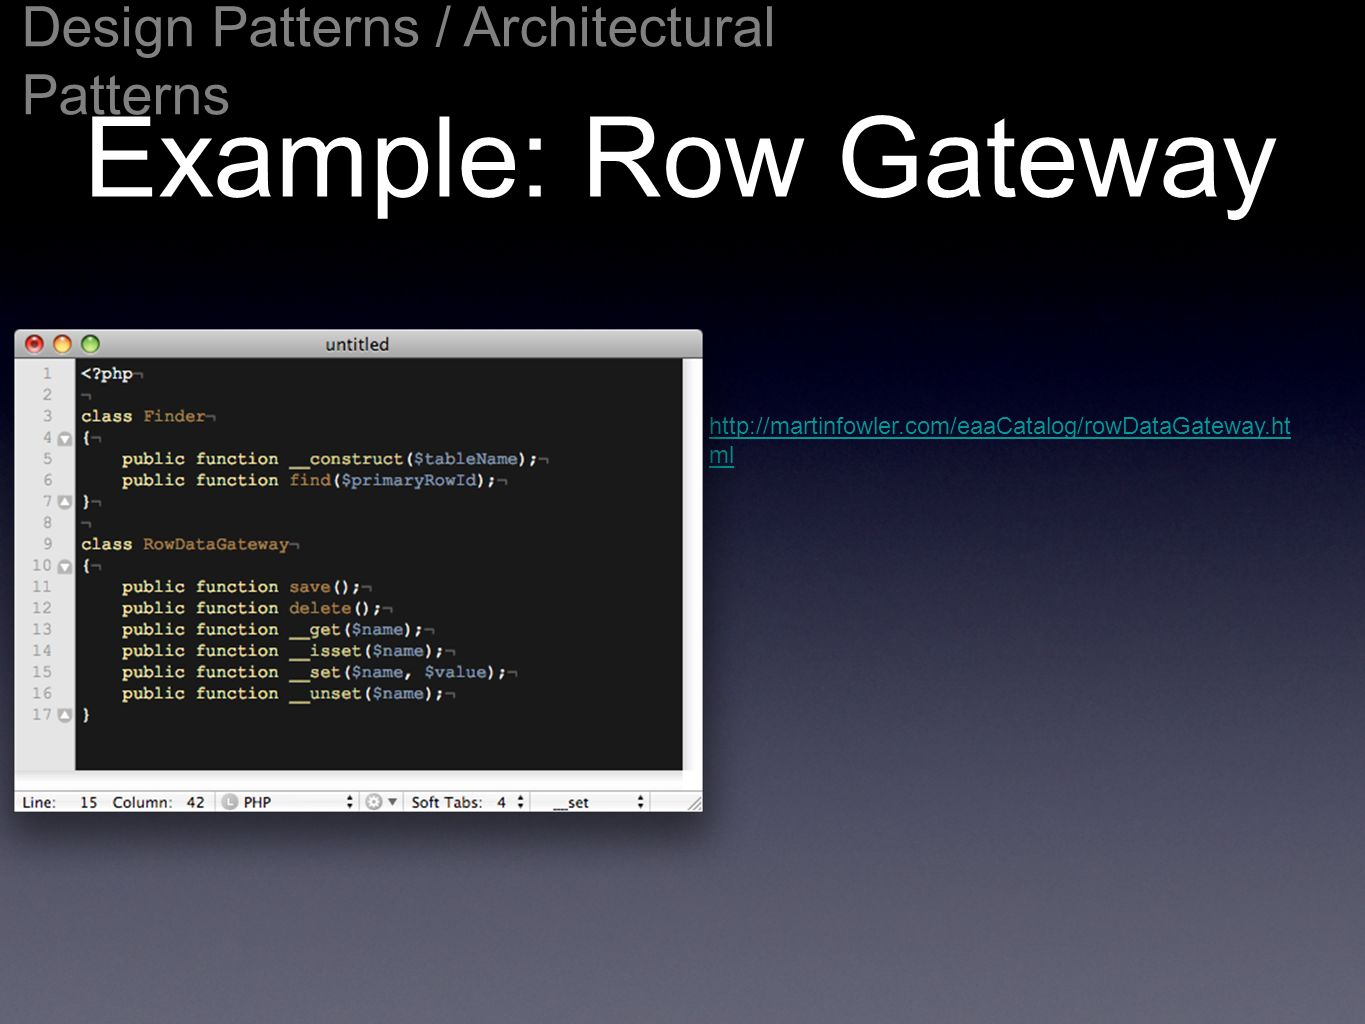 Example: Row Gateway Design Patterns / Architectural Patterns http://martinfowler.com/eaaCatalog/rowDataGateway.ht ml